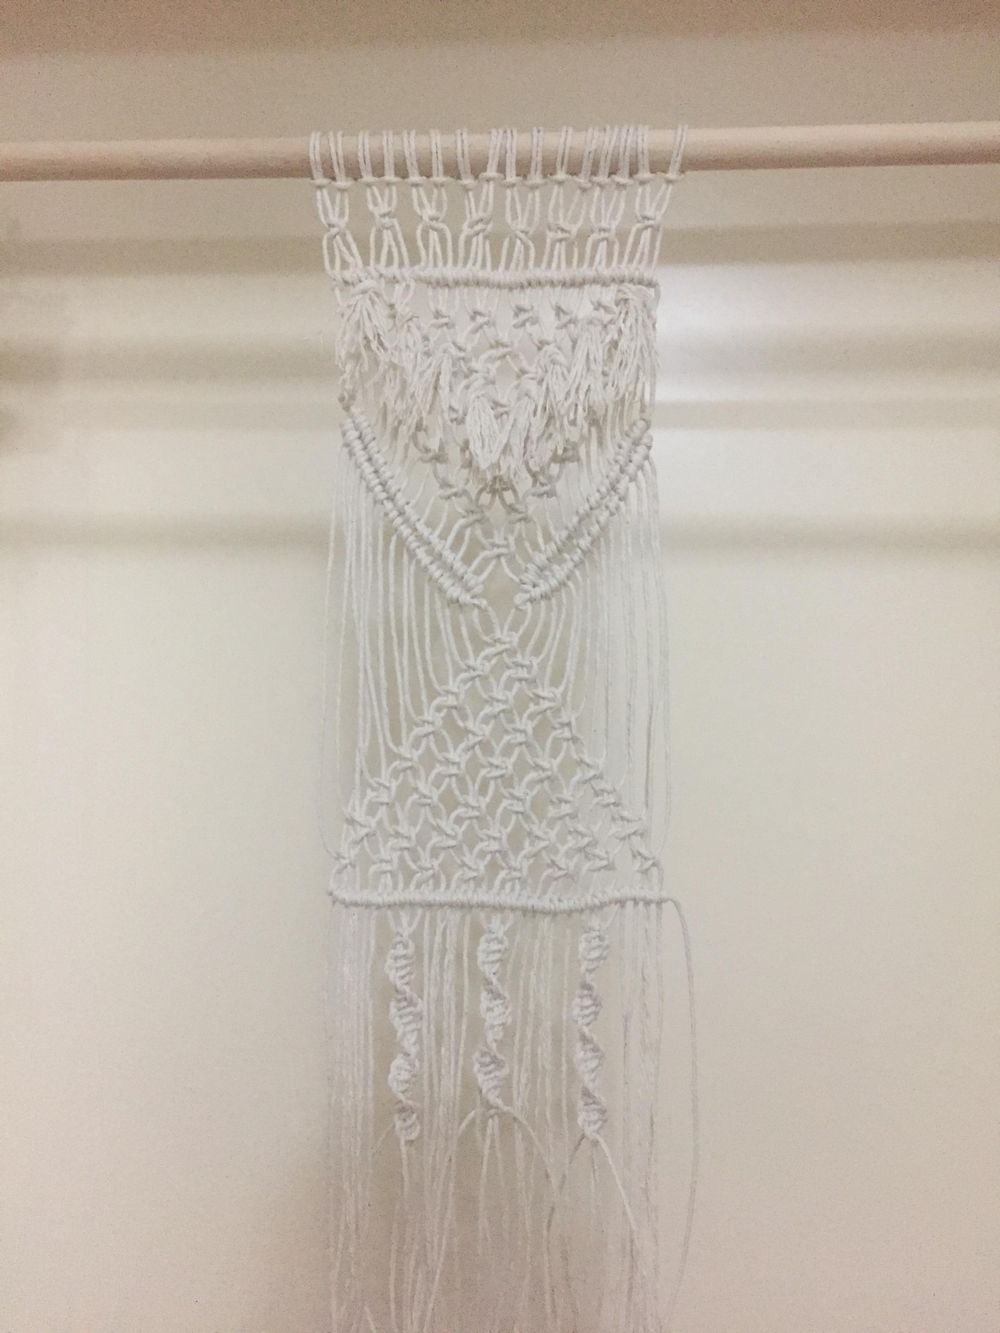 Macrame project with fringe!  - image 1 - student project